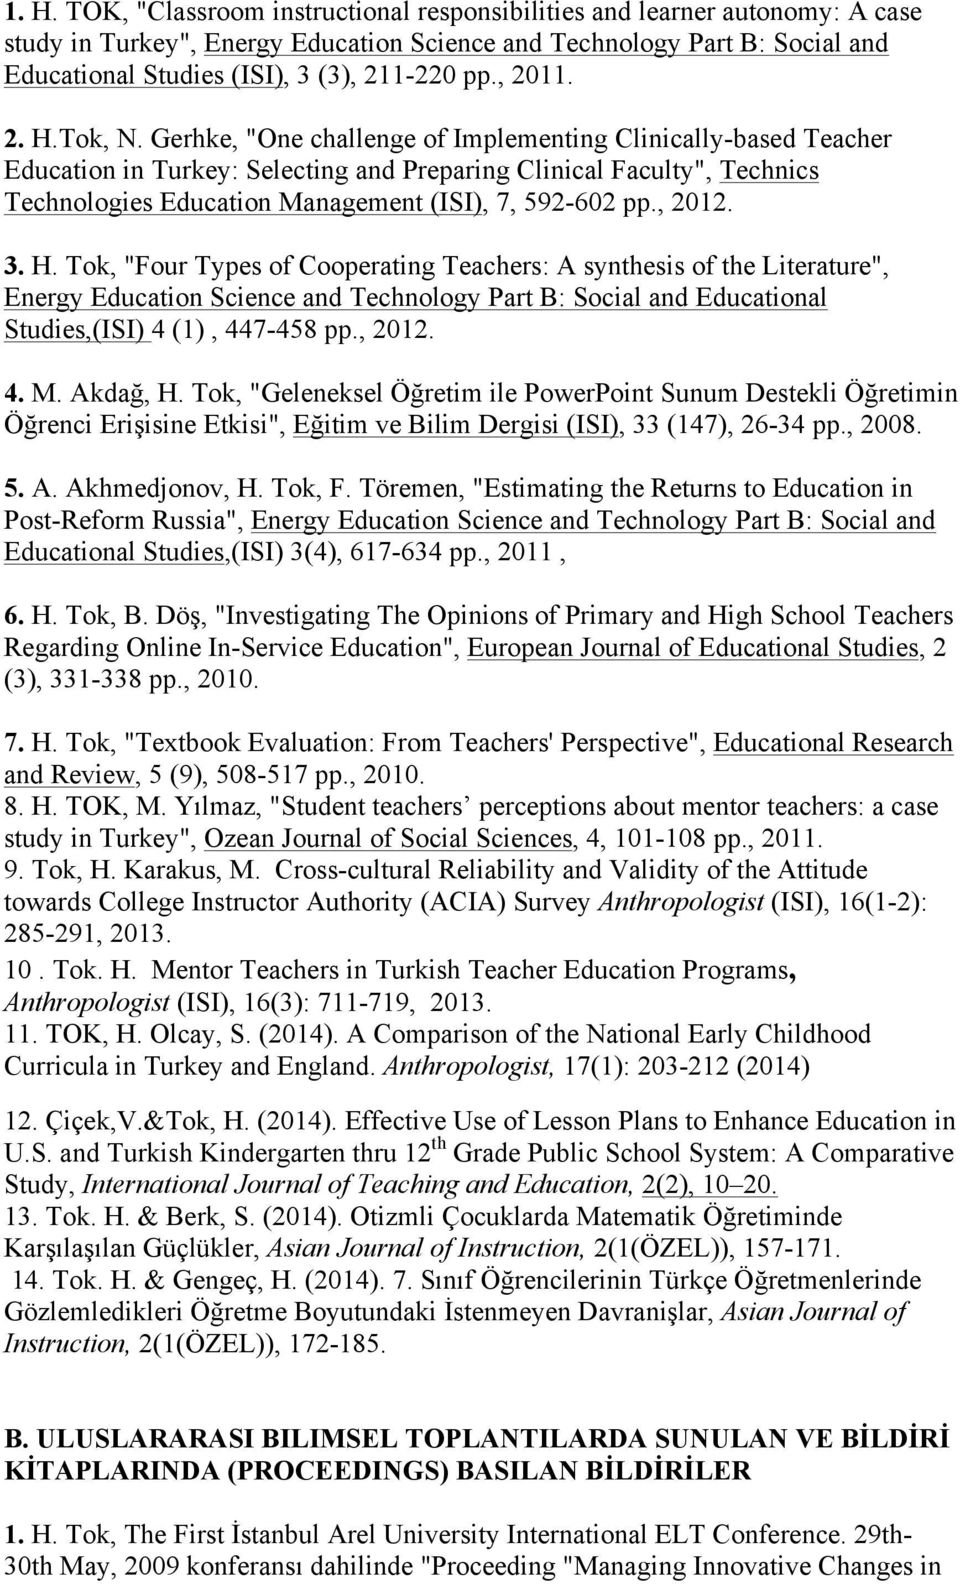 "Gerhke, ""One challenge of Implementing Clinically-based Teacher Education in Turkey: Selecting and Preparing Clinical Faculty"", Technics Technologies Education Management (ISI), 7, 592-602 pp., 2012."